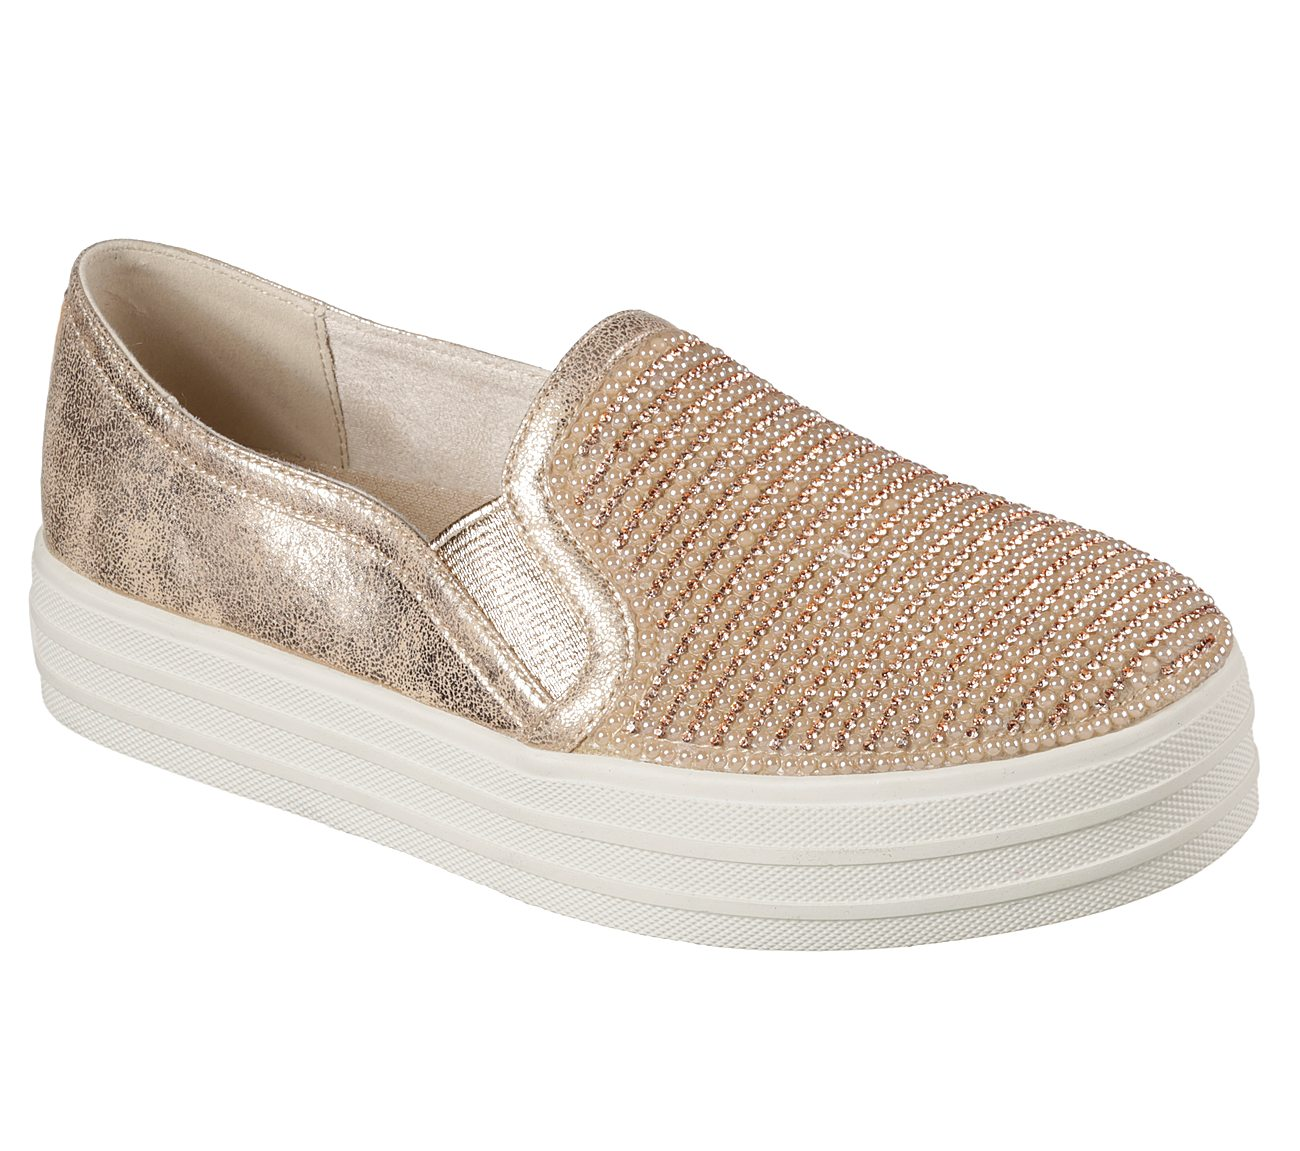 Buy SKECHERS Double Up - Shiny Dancer SKECHER Street Shoes only £65.00 aaa3af0a4